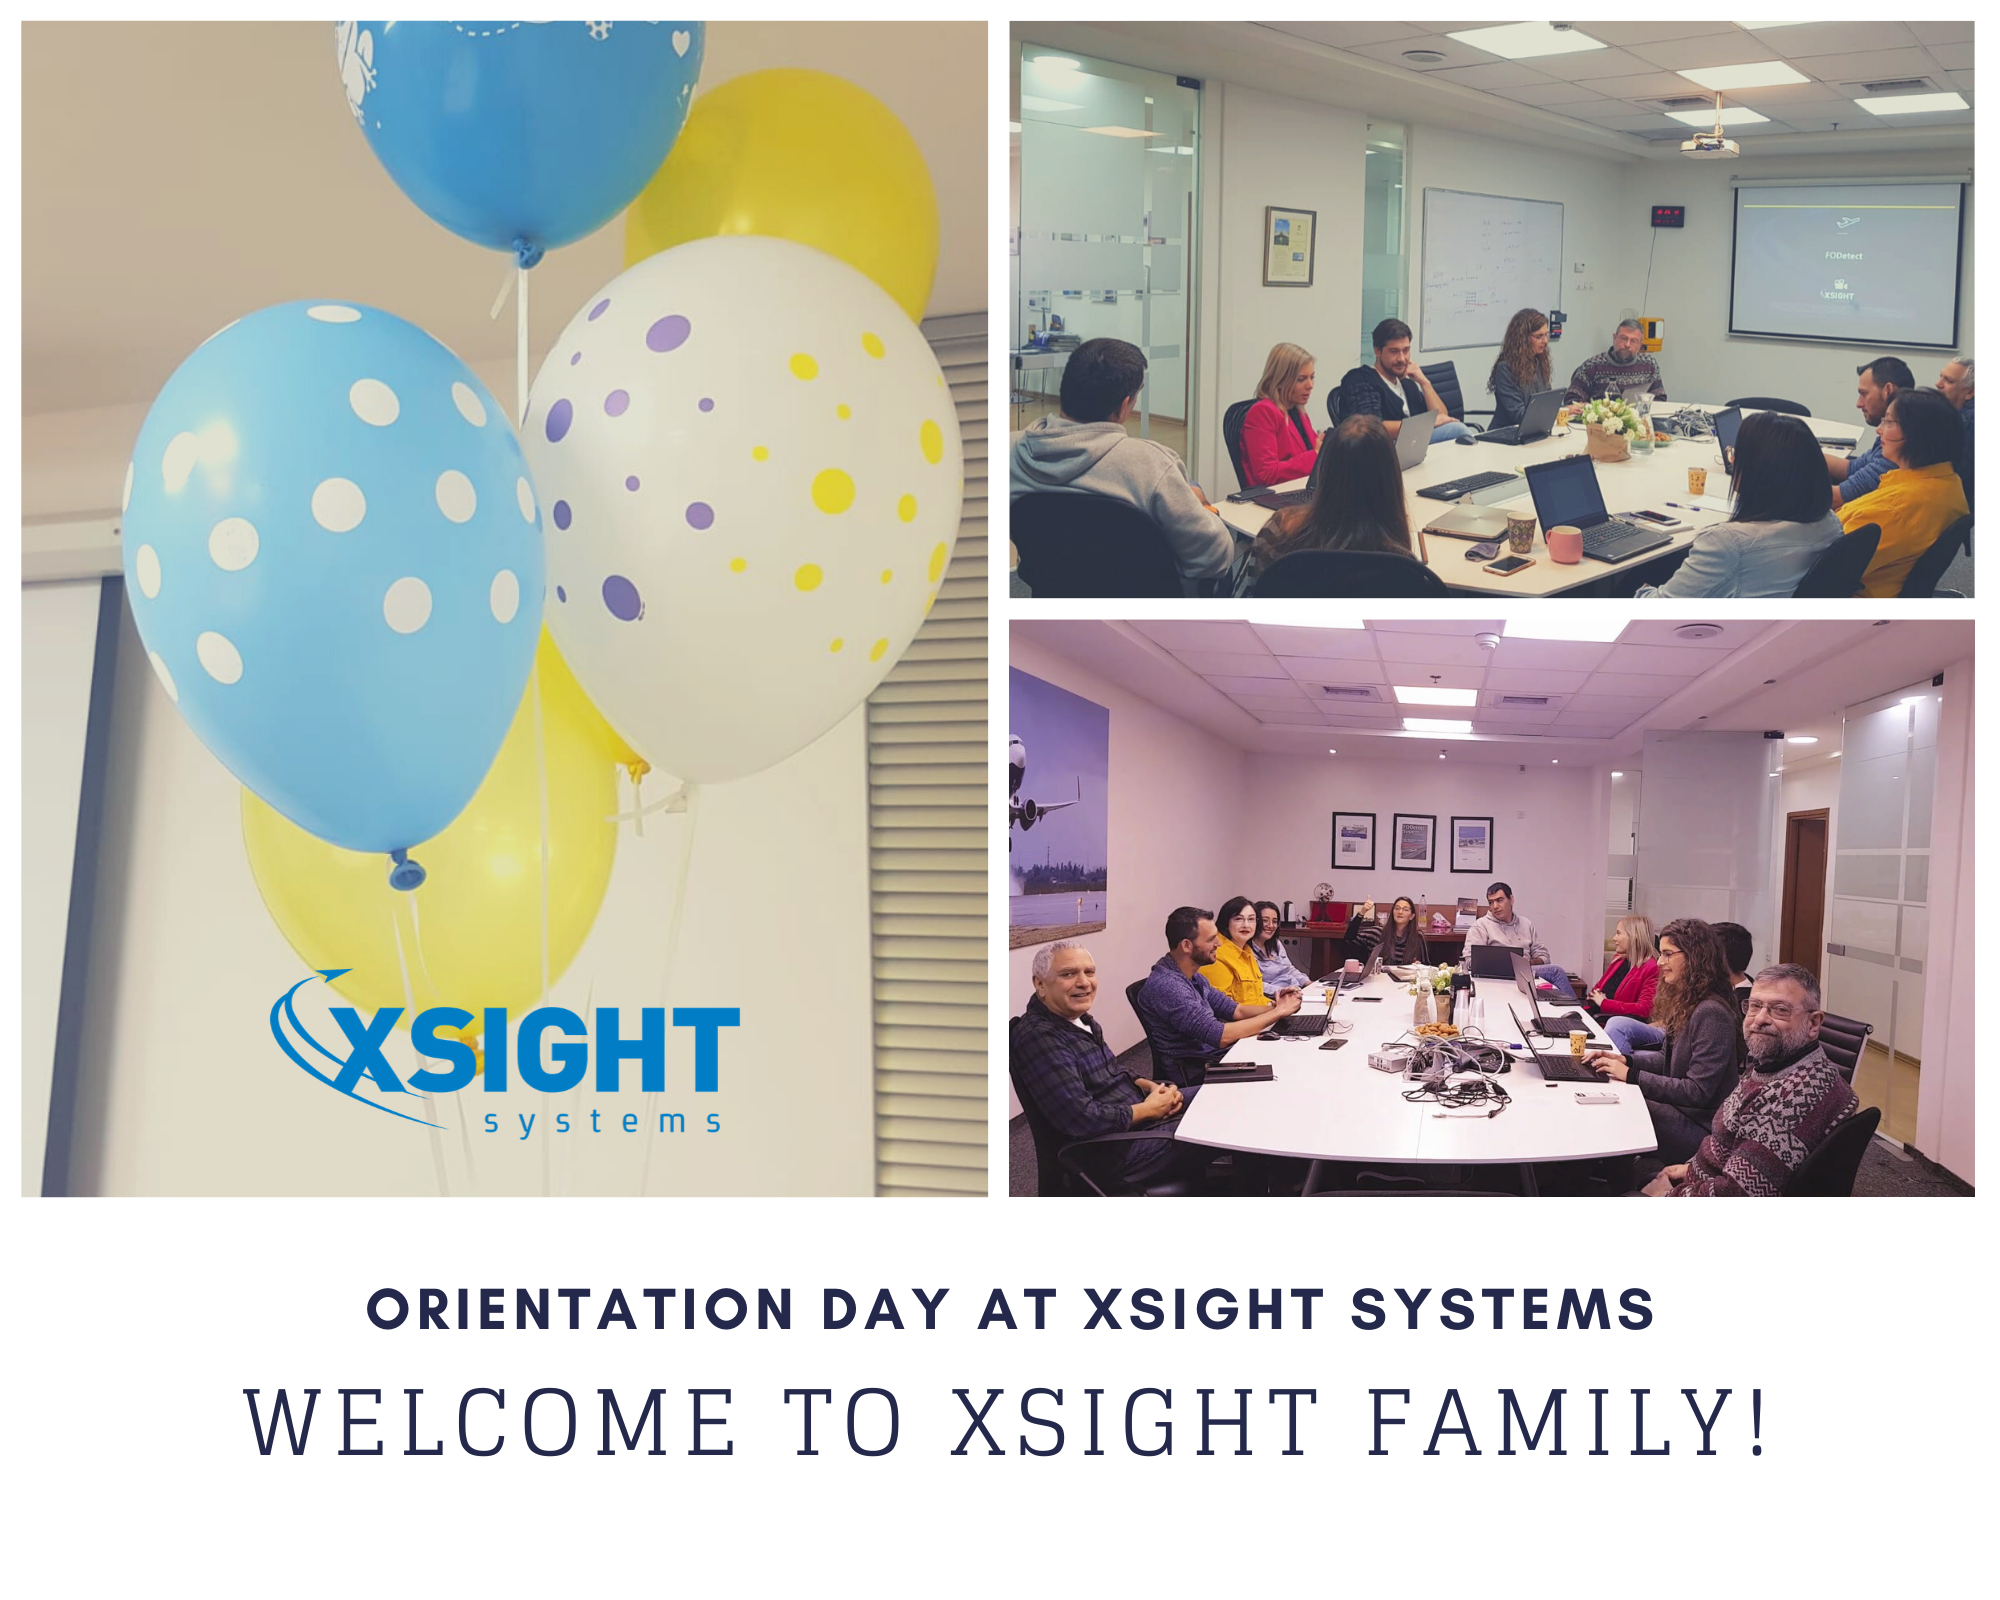 Orientation day at Xsight Systems